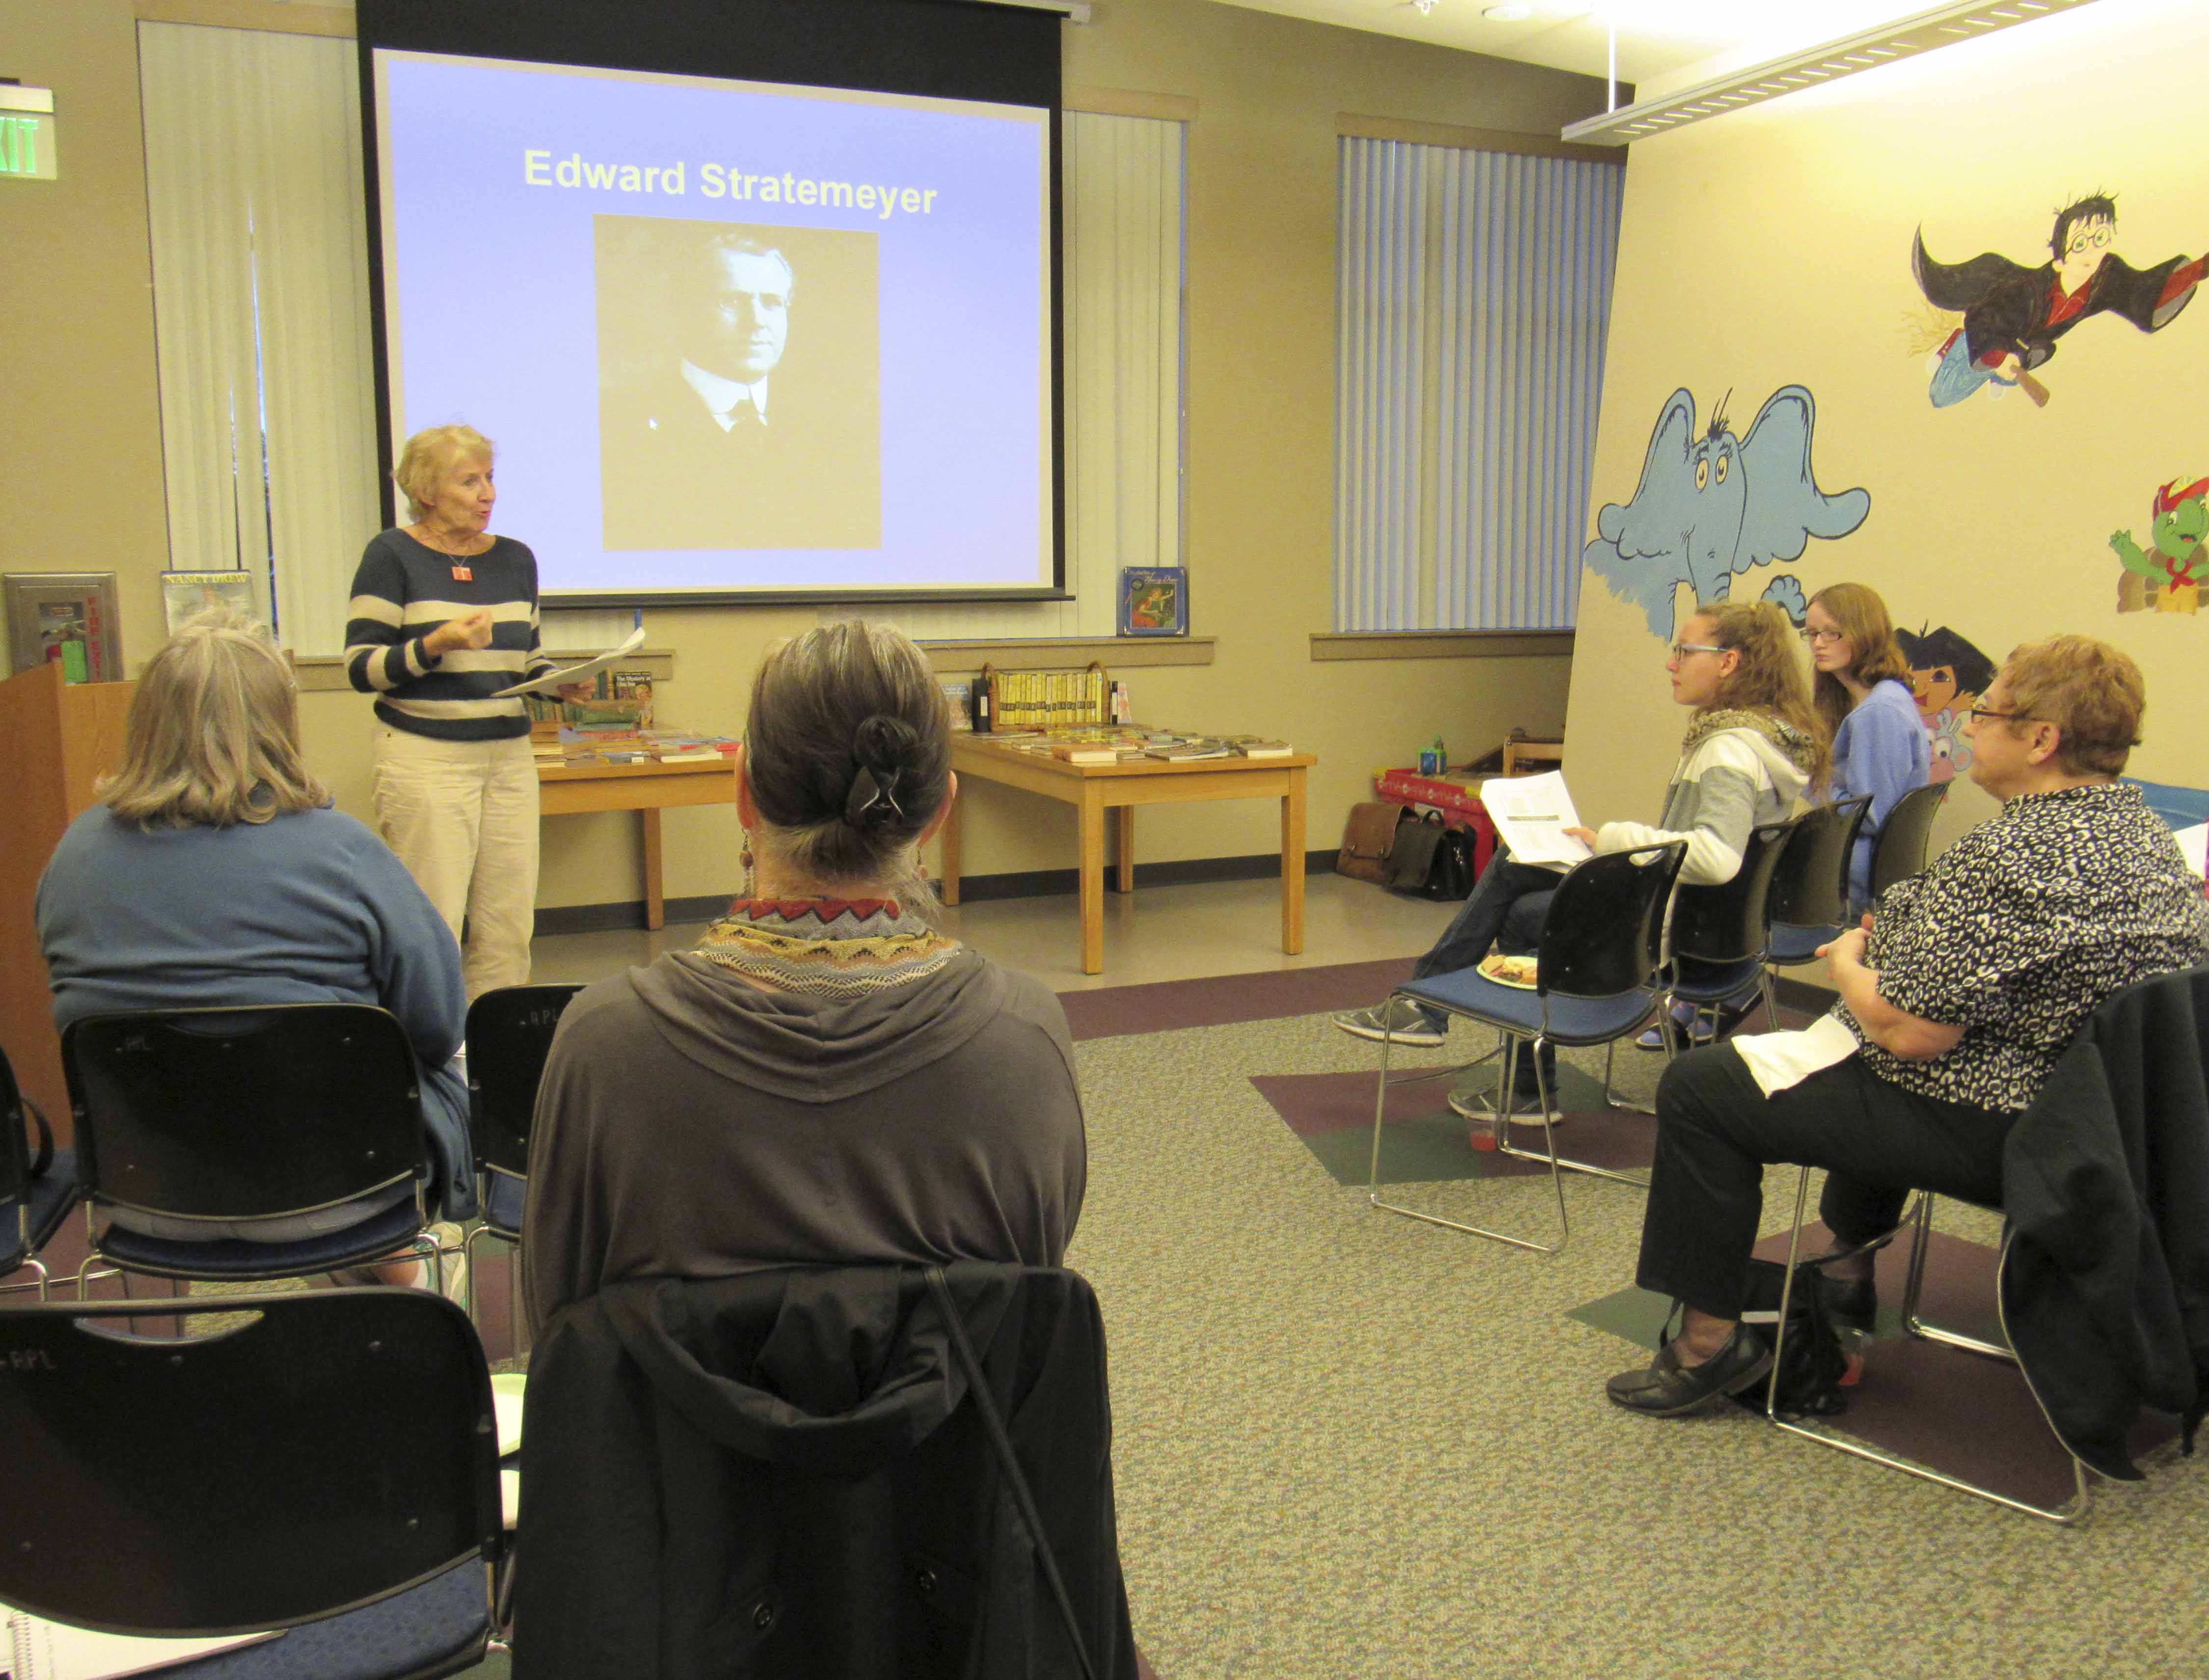 The Monticello Public Library welcomed Nancy Drew historian and collector Dr. Barbara Lounsberry on Oct. 4. Lounsberry, who is a former English professor from the University of Northern Iowa, is an avid fan of all things Nancy Drew. Her talk not only centered on the history of the famed female detective that spans several decades, but on the original unknown author Mildred Augustine of Ladora, Iowa.